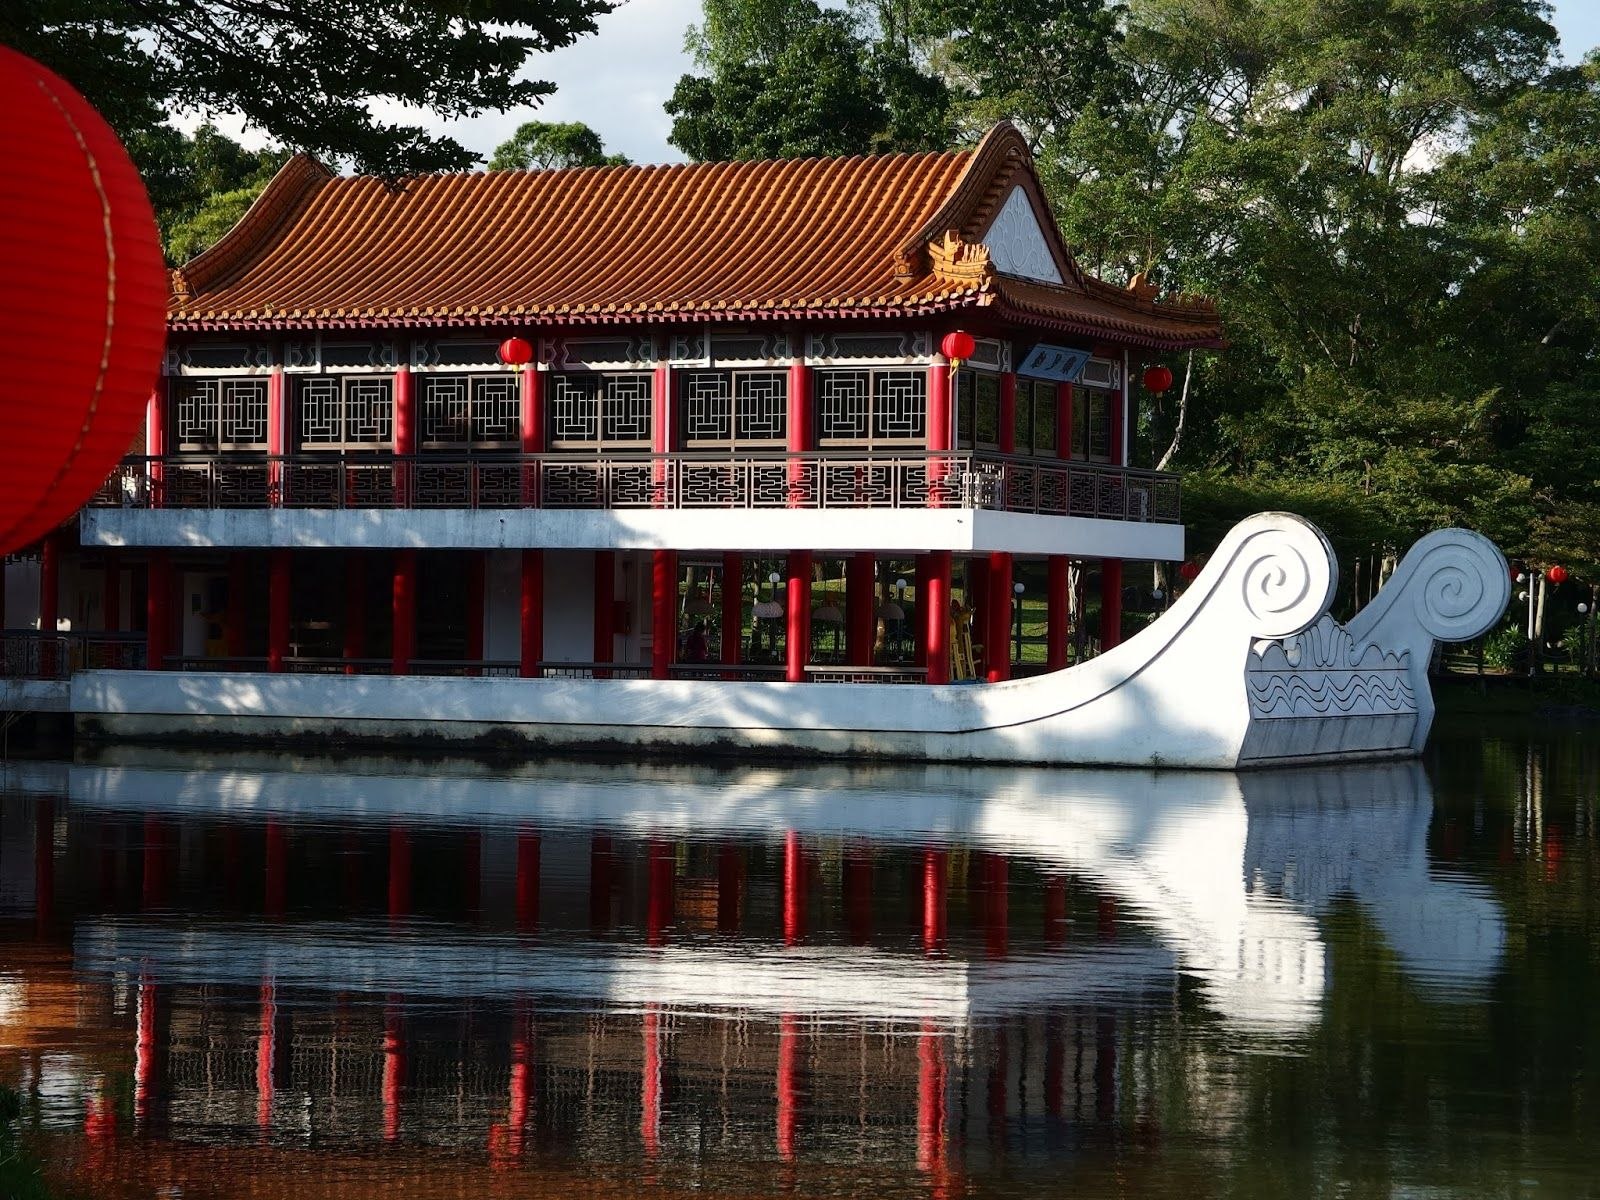 Fabulous Stone boat in the Chinese Garden